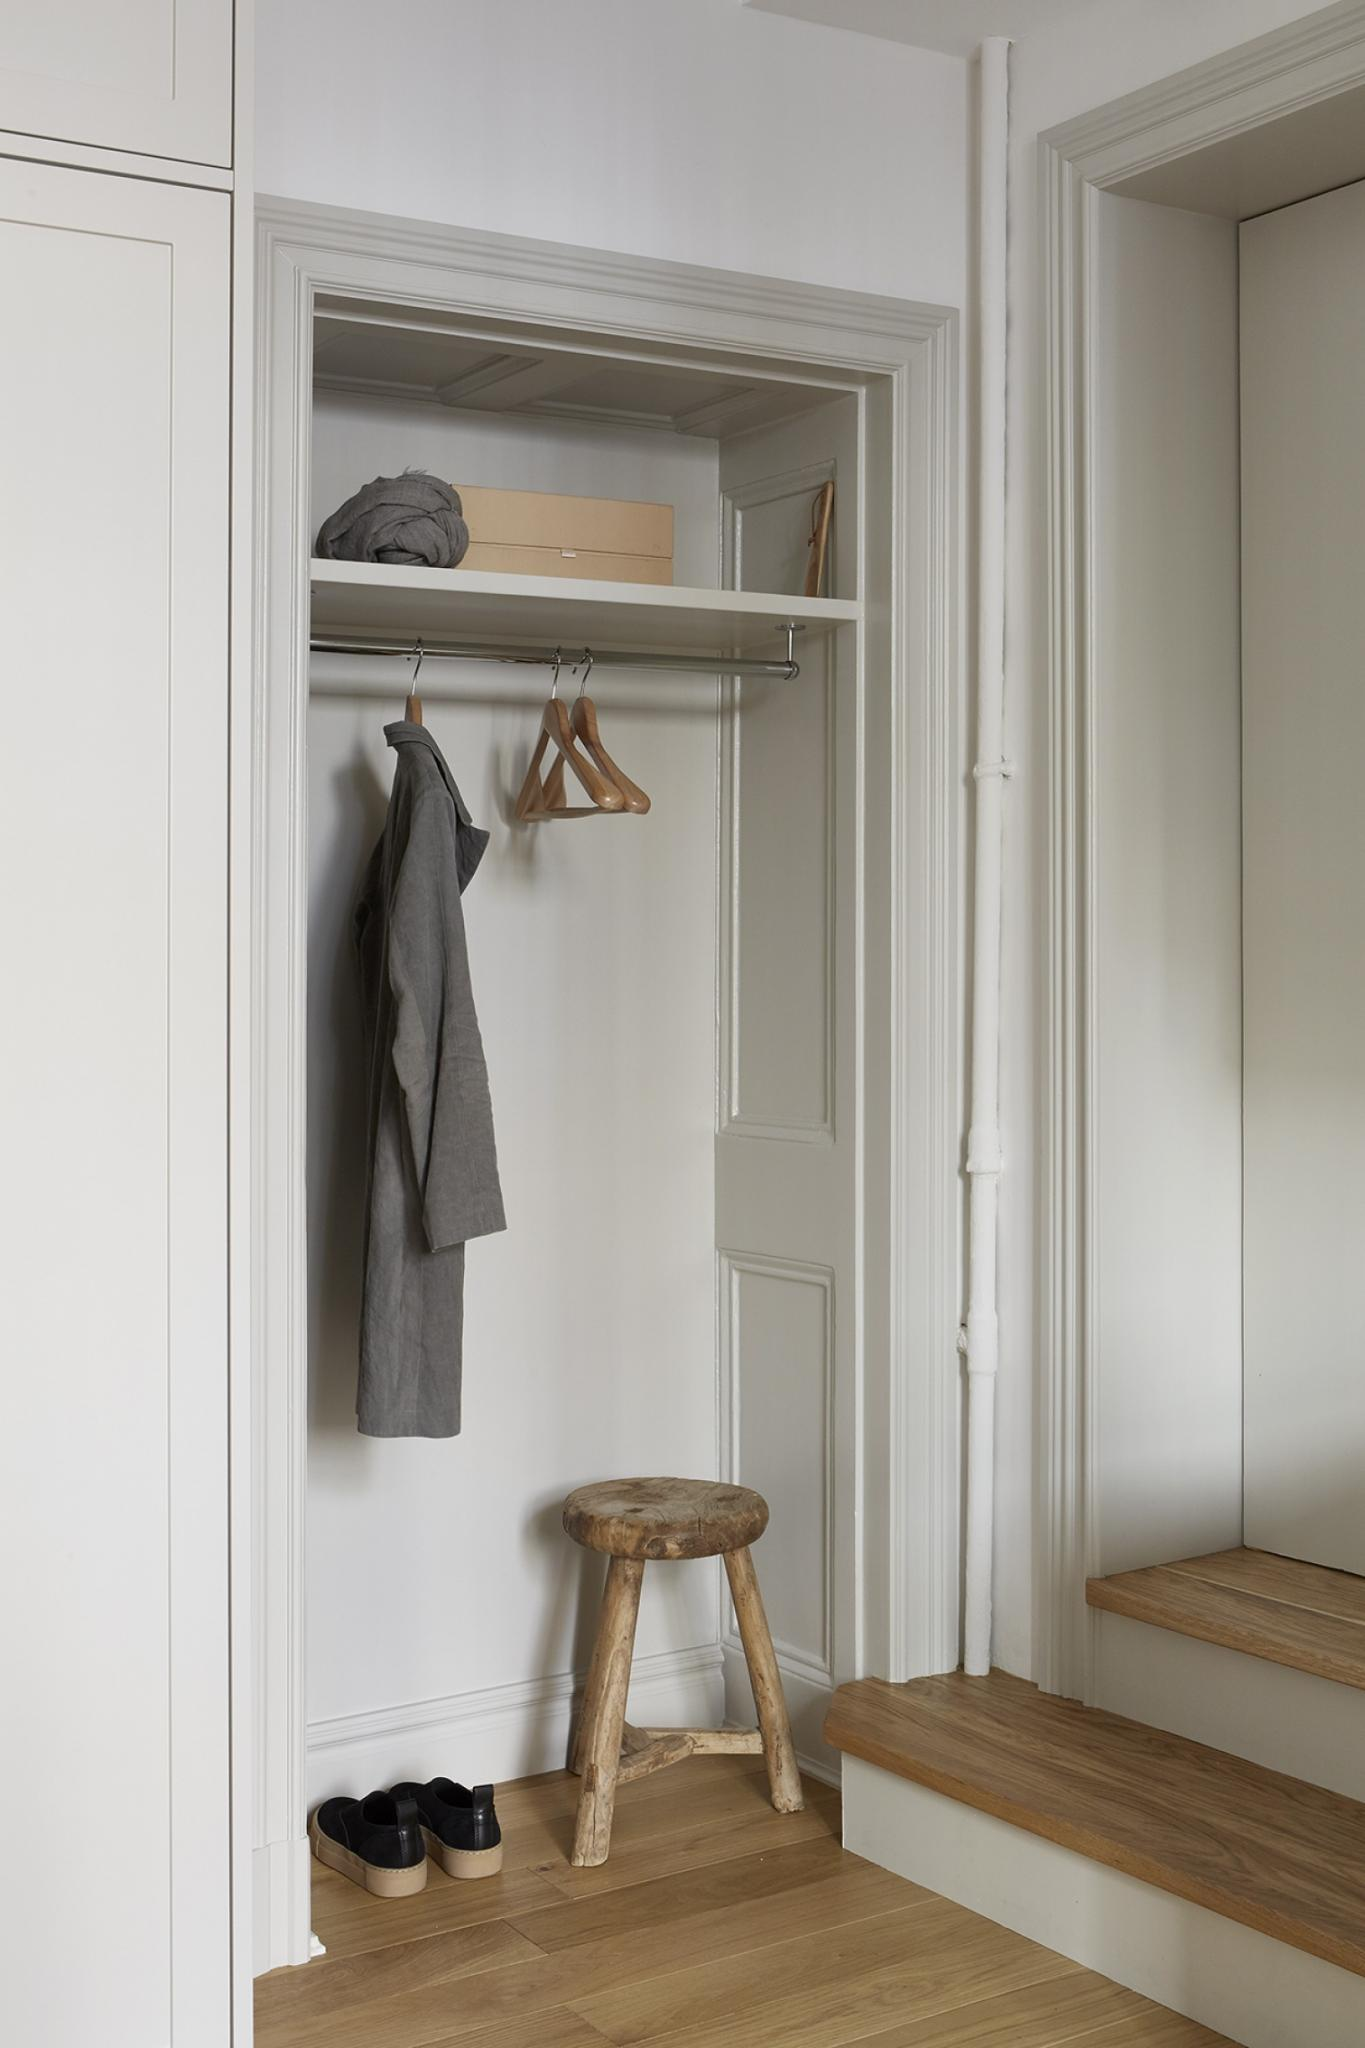 Closet with no door and rustic three legged wood stool in Stockholm apartment